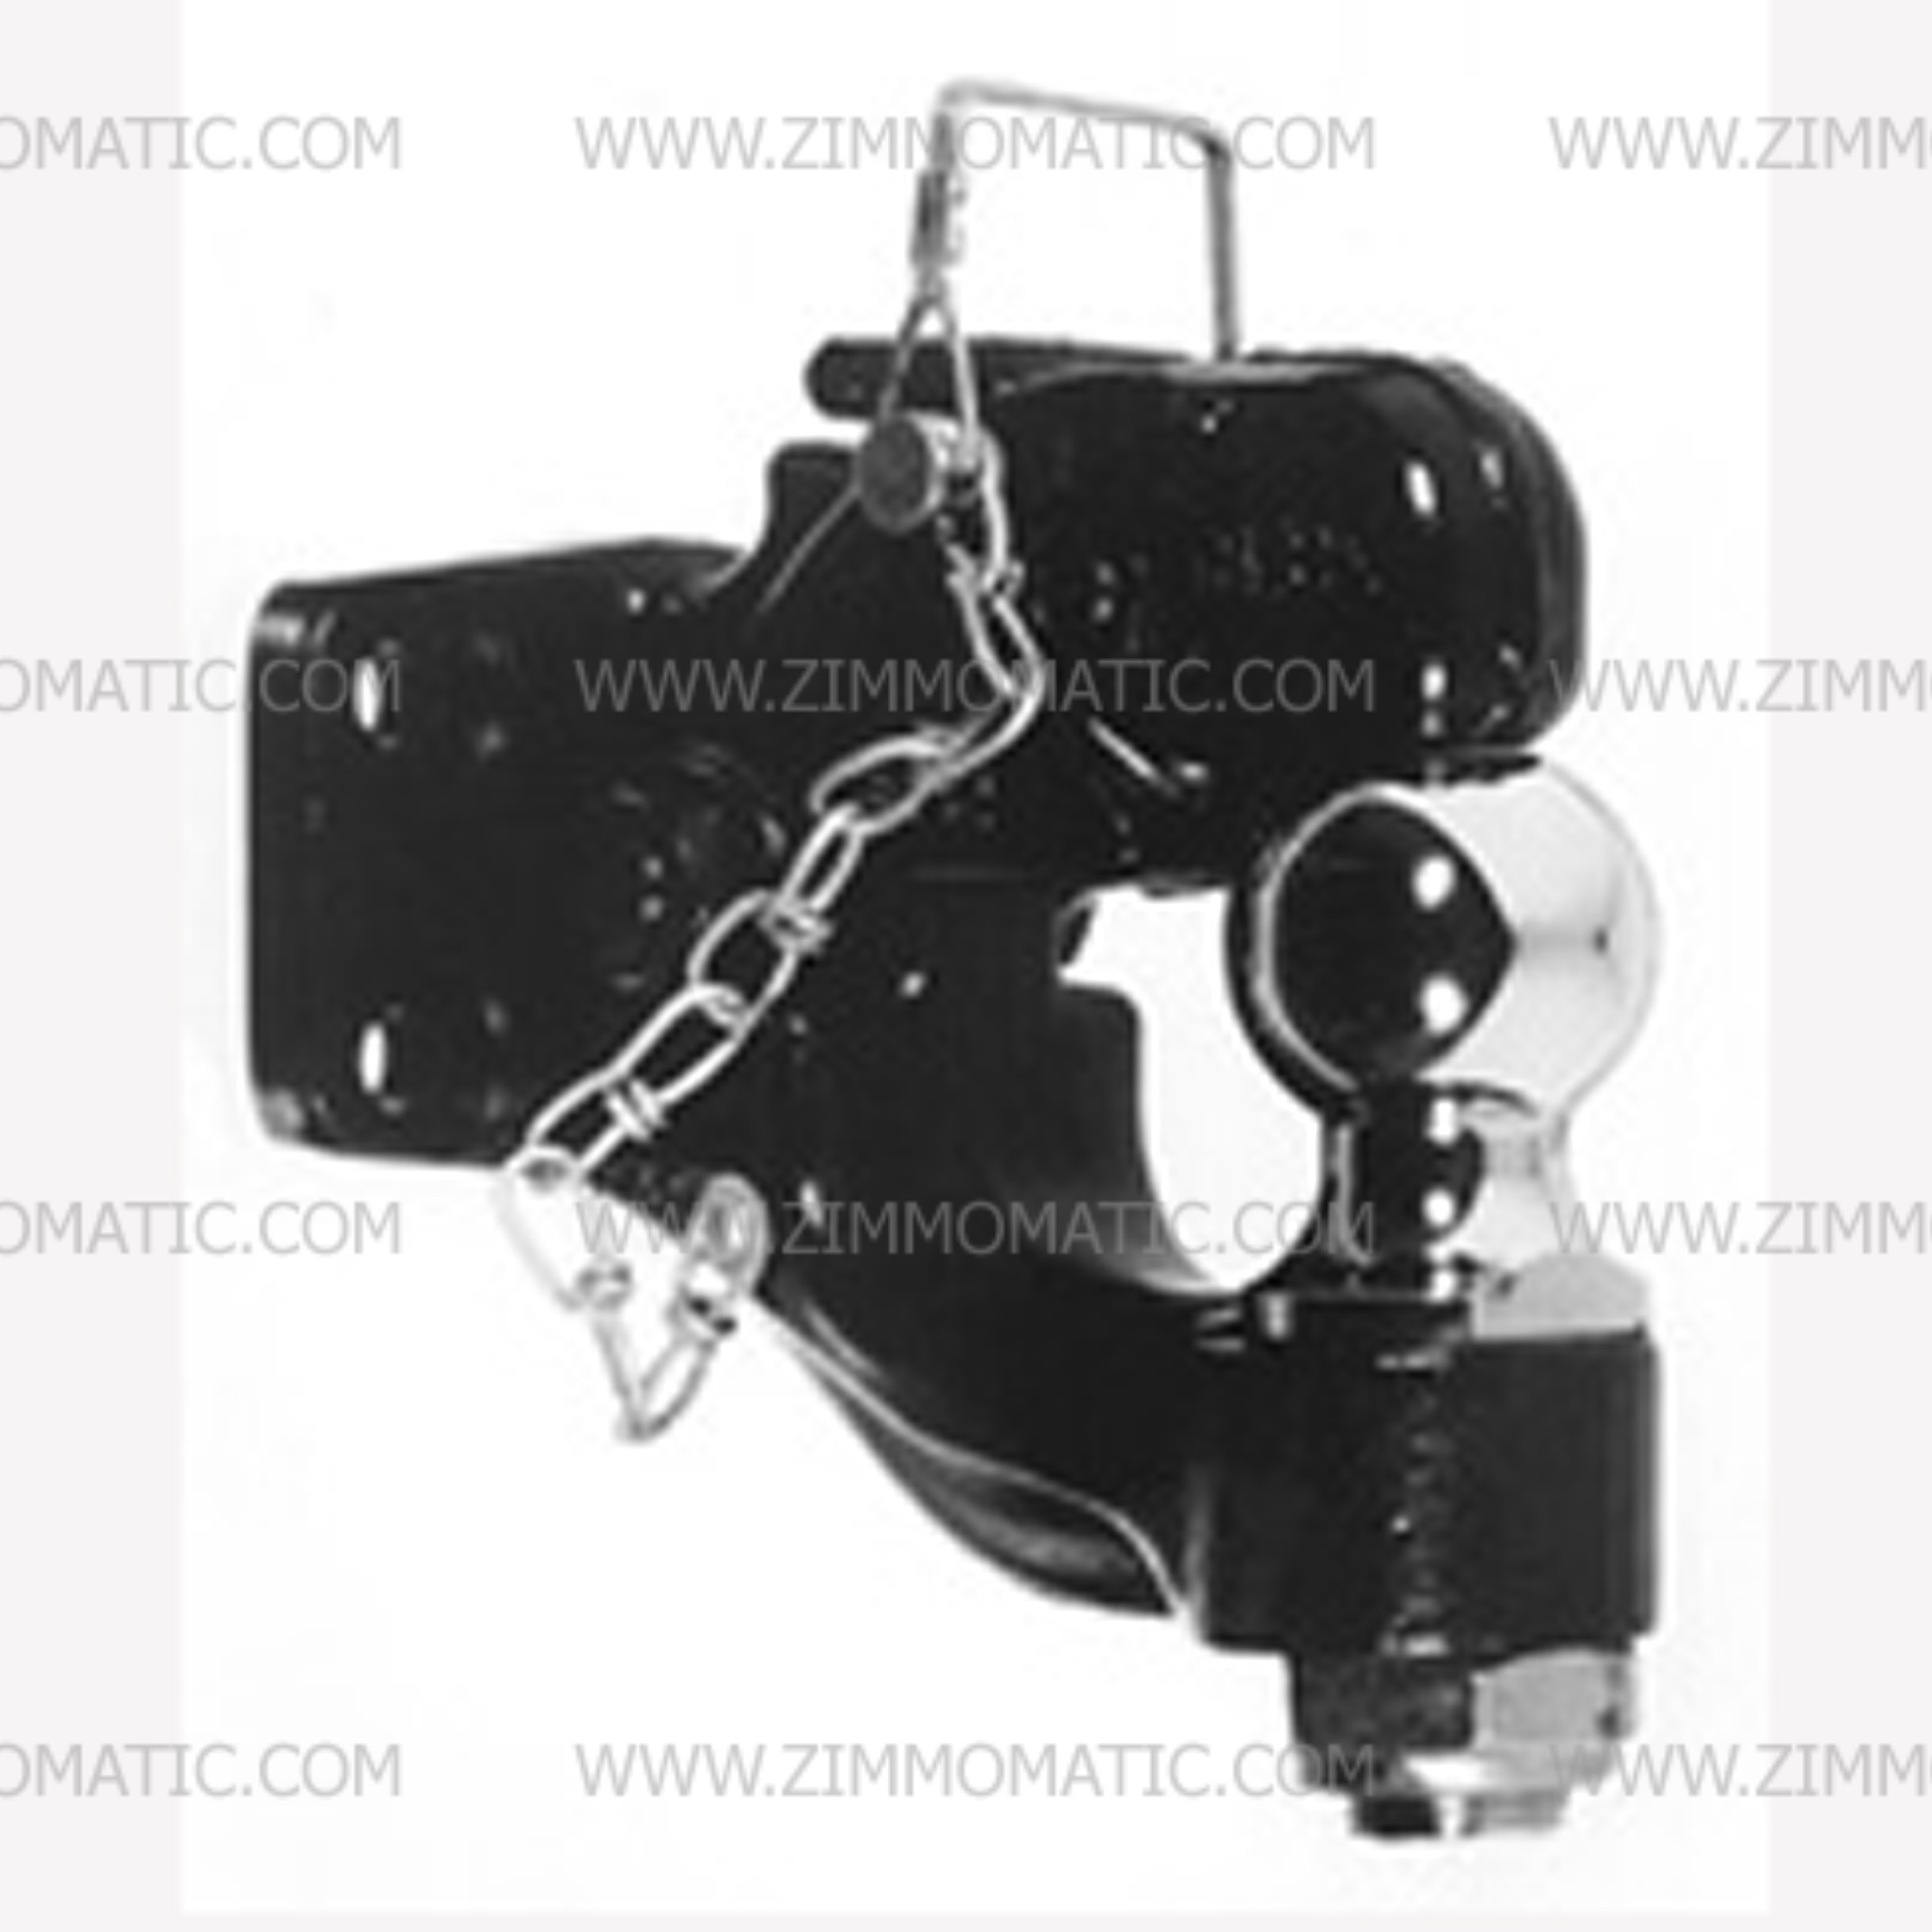 8 ton combination ball hitch, 2-5/16 inch ball